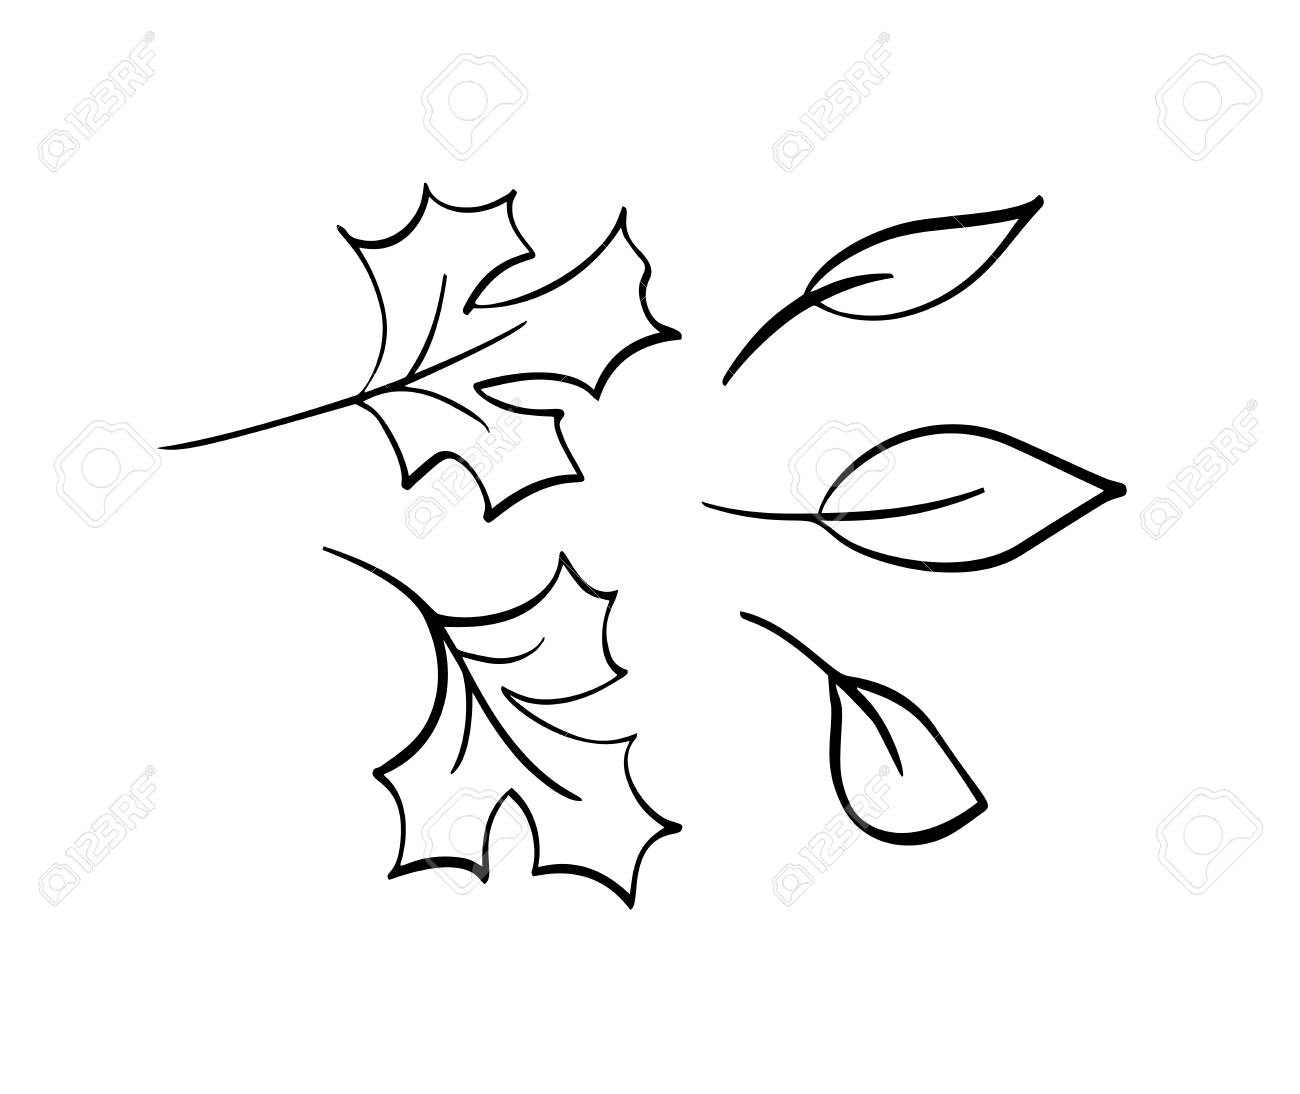 Vector Collection Of Hand Drawn Autumn Leaves Isolated Sketch Royalty Free Cliparts Vectors And Stock Illustration Image 122805501